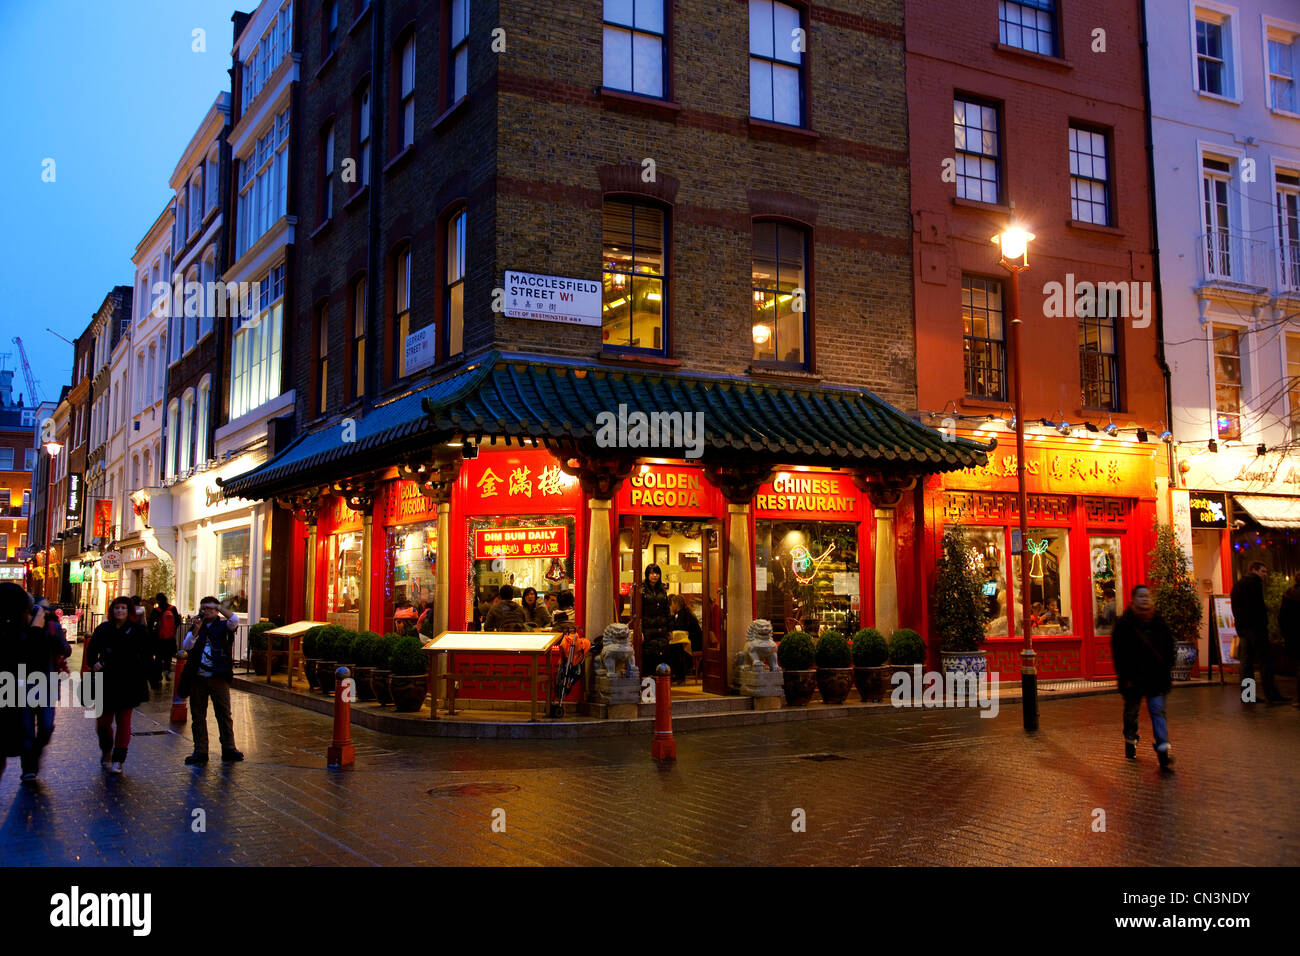 Restaurant Facade chinese restaurant facade stock photos & chinese restaurant facade